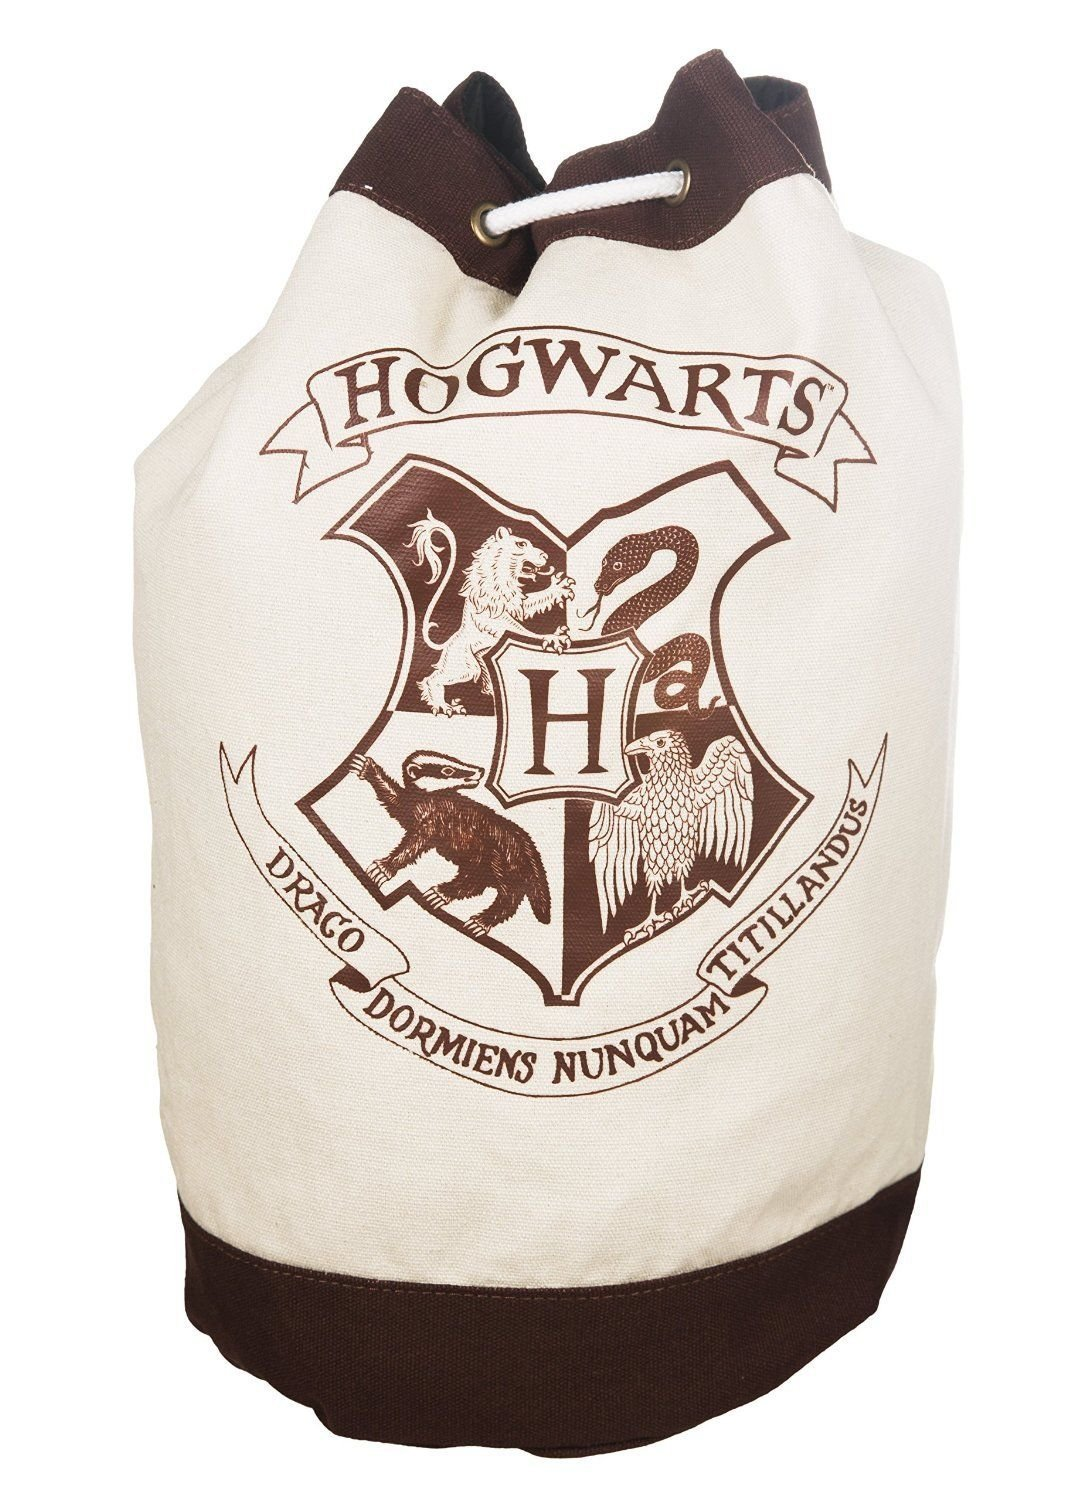 Hogwarts School Crest Canvas Drawstring Duffle Bag by Harry Potter (Image #1)